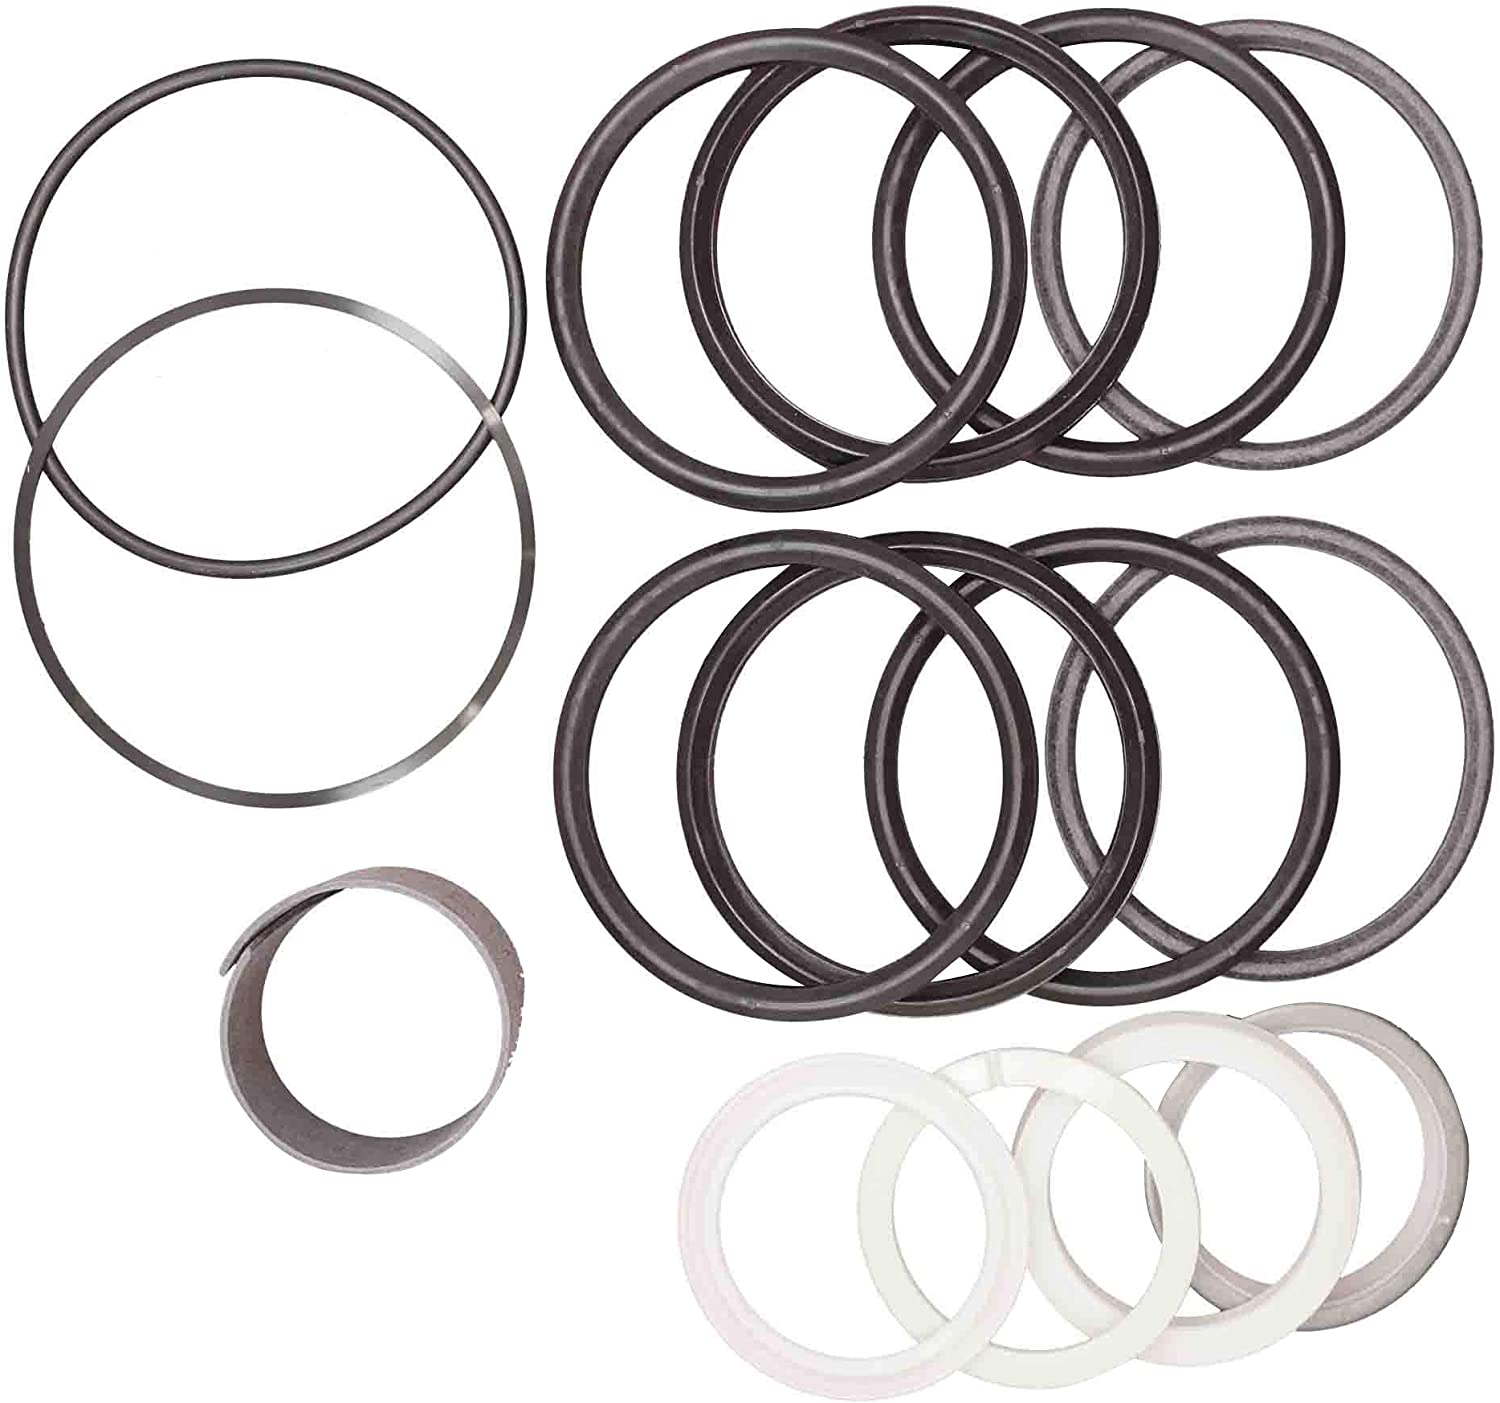 Tornado Heavy Equipment Parts Fits Case 1543263C1 Hydraulic Cylinder Seal Kit